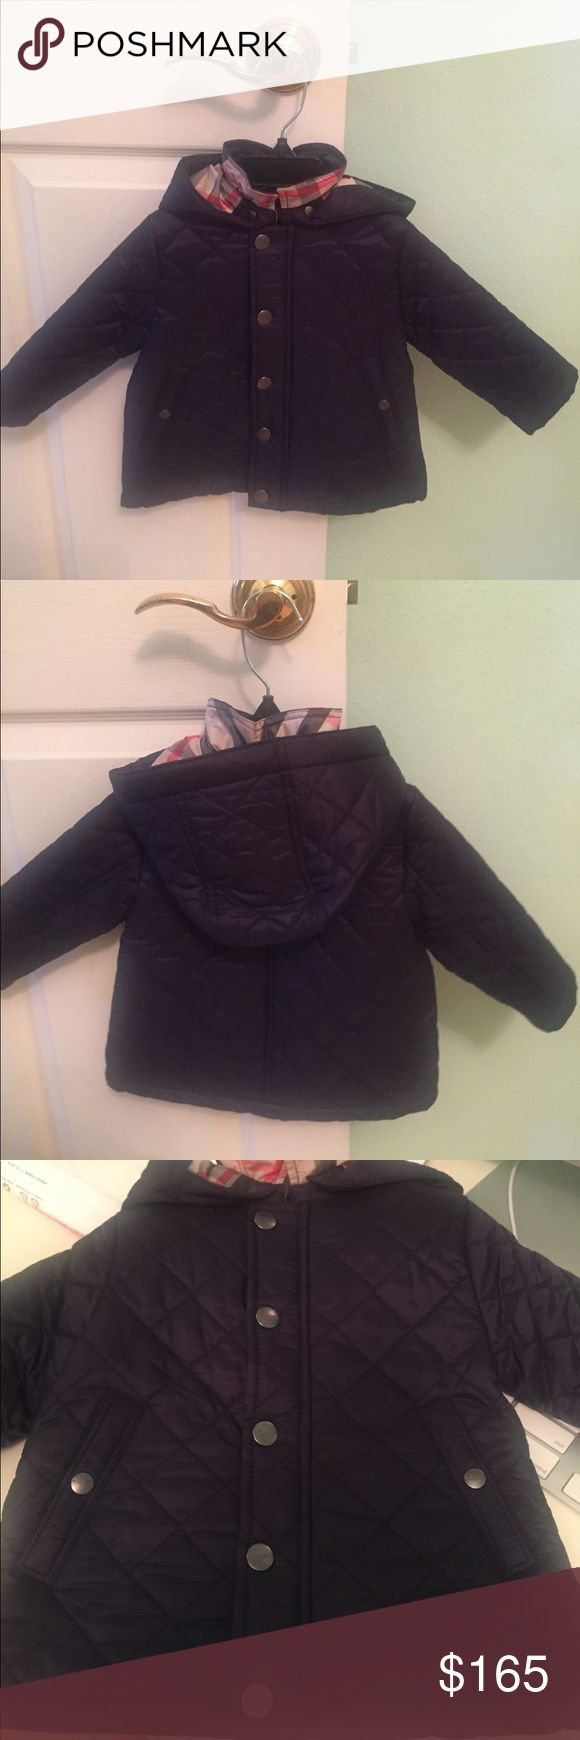 Burberry Quilted Jacket Loved by moms and loved by little ones. This is the most used Kids jacket. It's machine washable, and super soft. Keeps kids warm on cold days and a perfect jacket for late night summer. Brand New With Tags. Has detachable hoodie. burberry Jackets & Coats